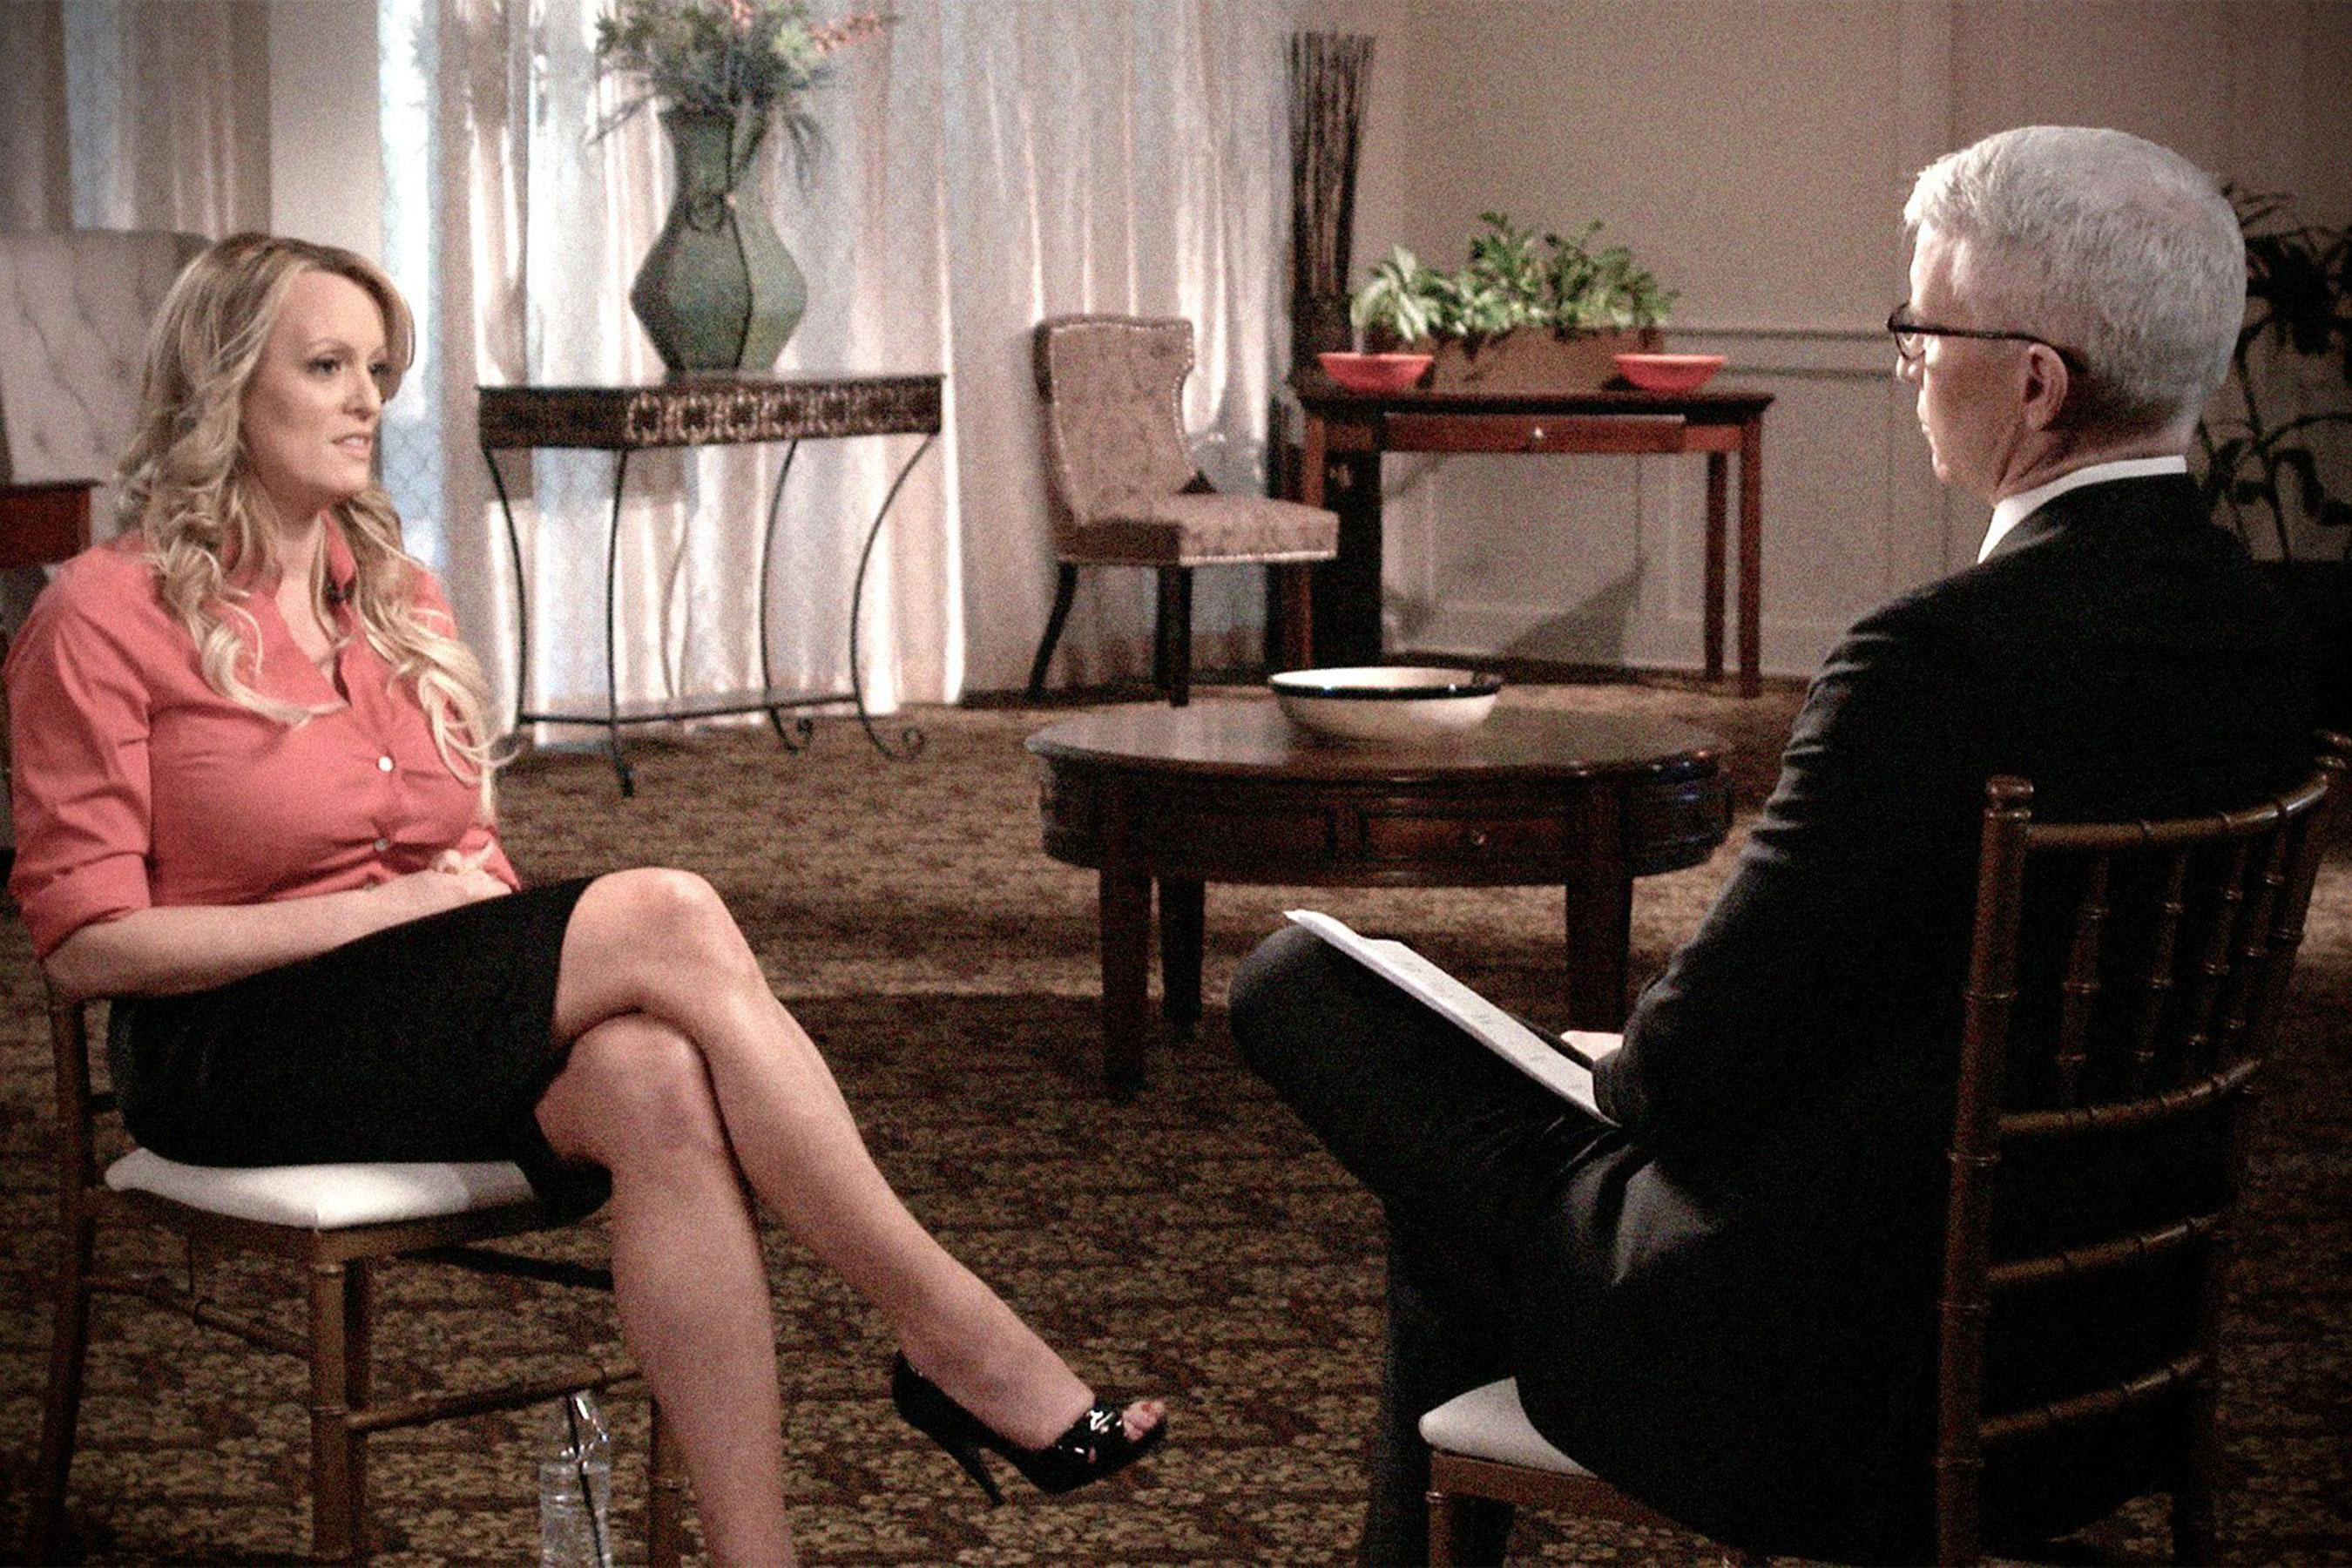 Stormy Daniels on 60 Minutes: The 6 biggest revelations